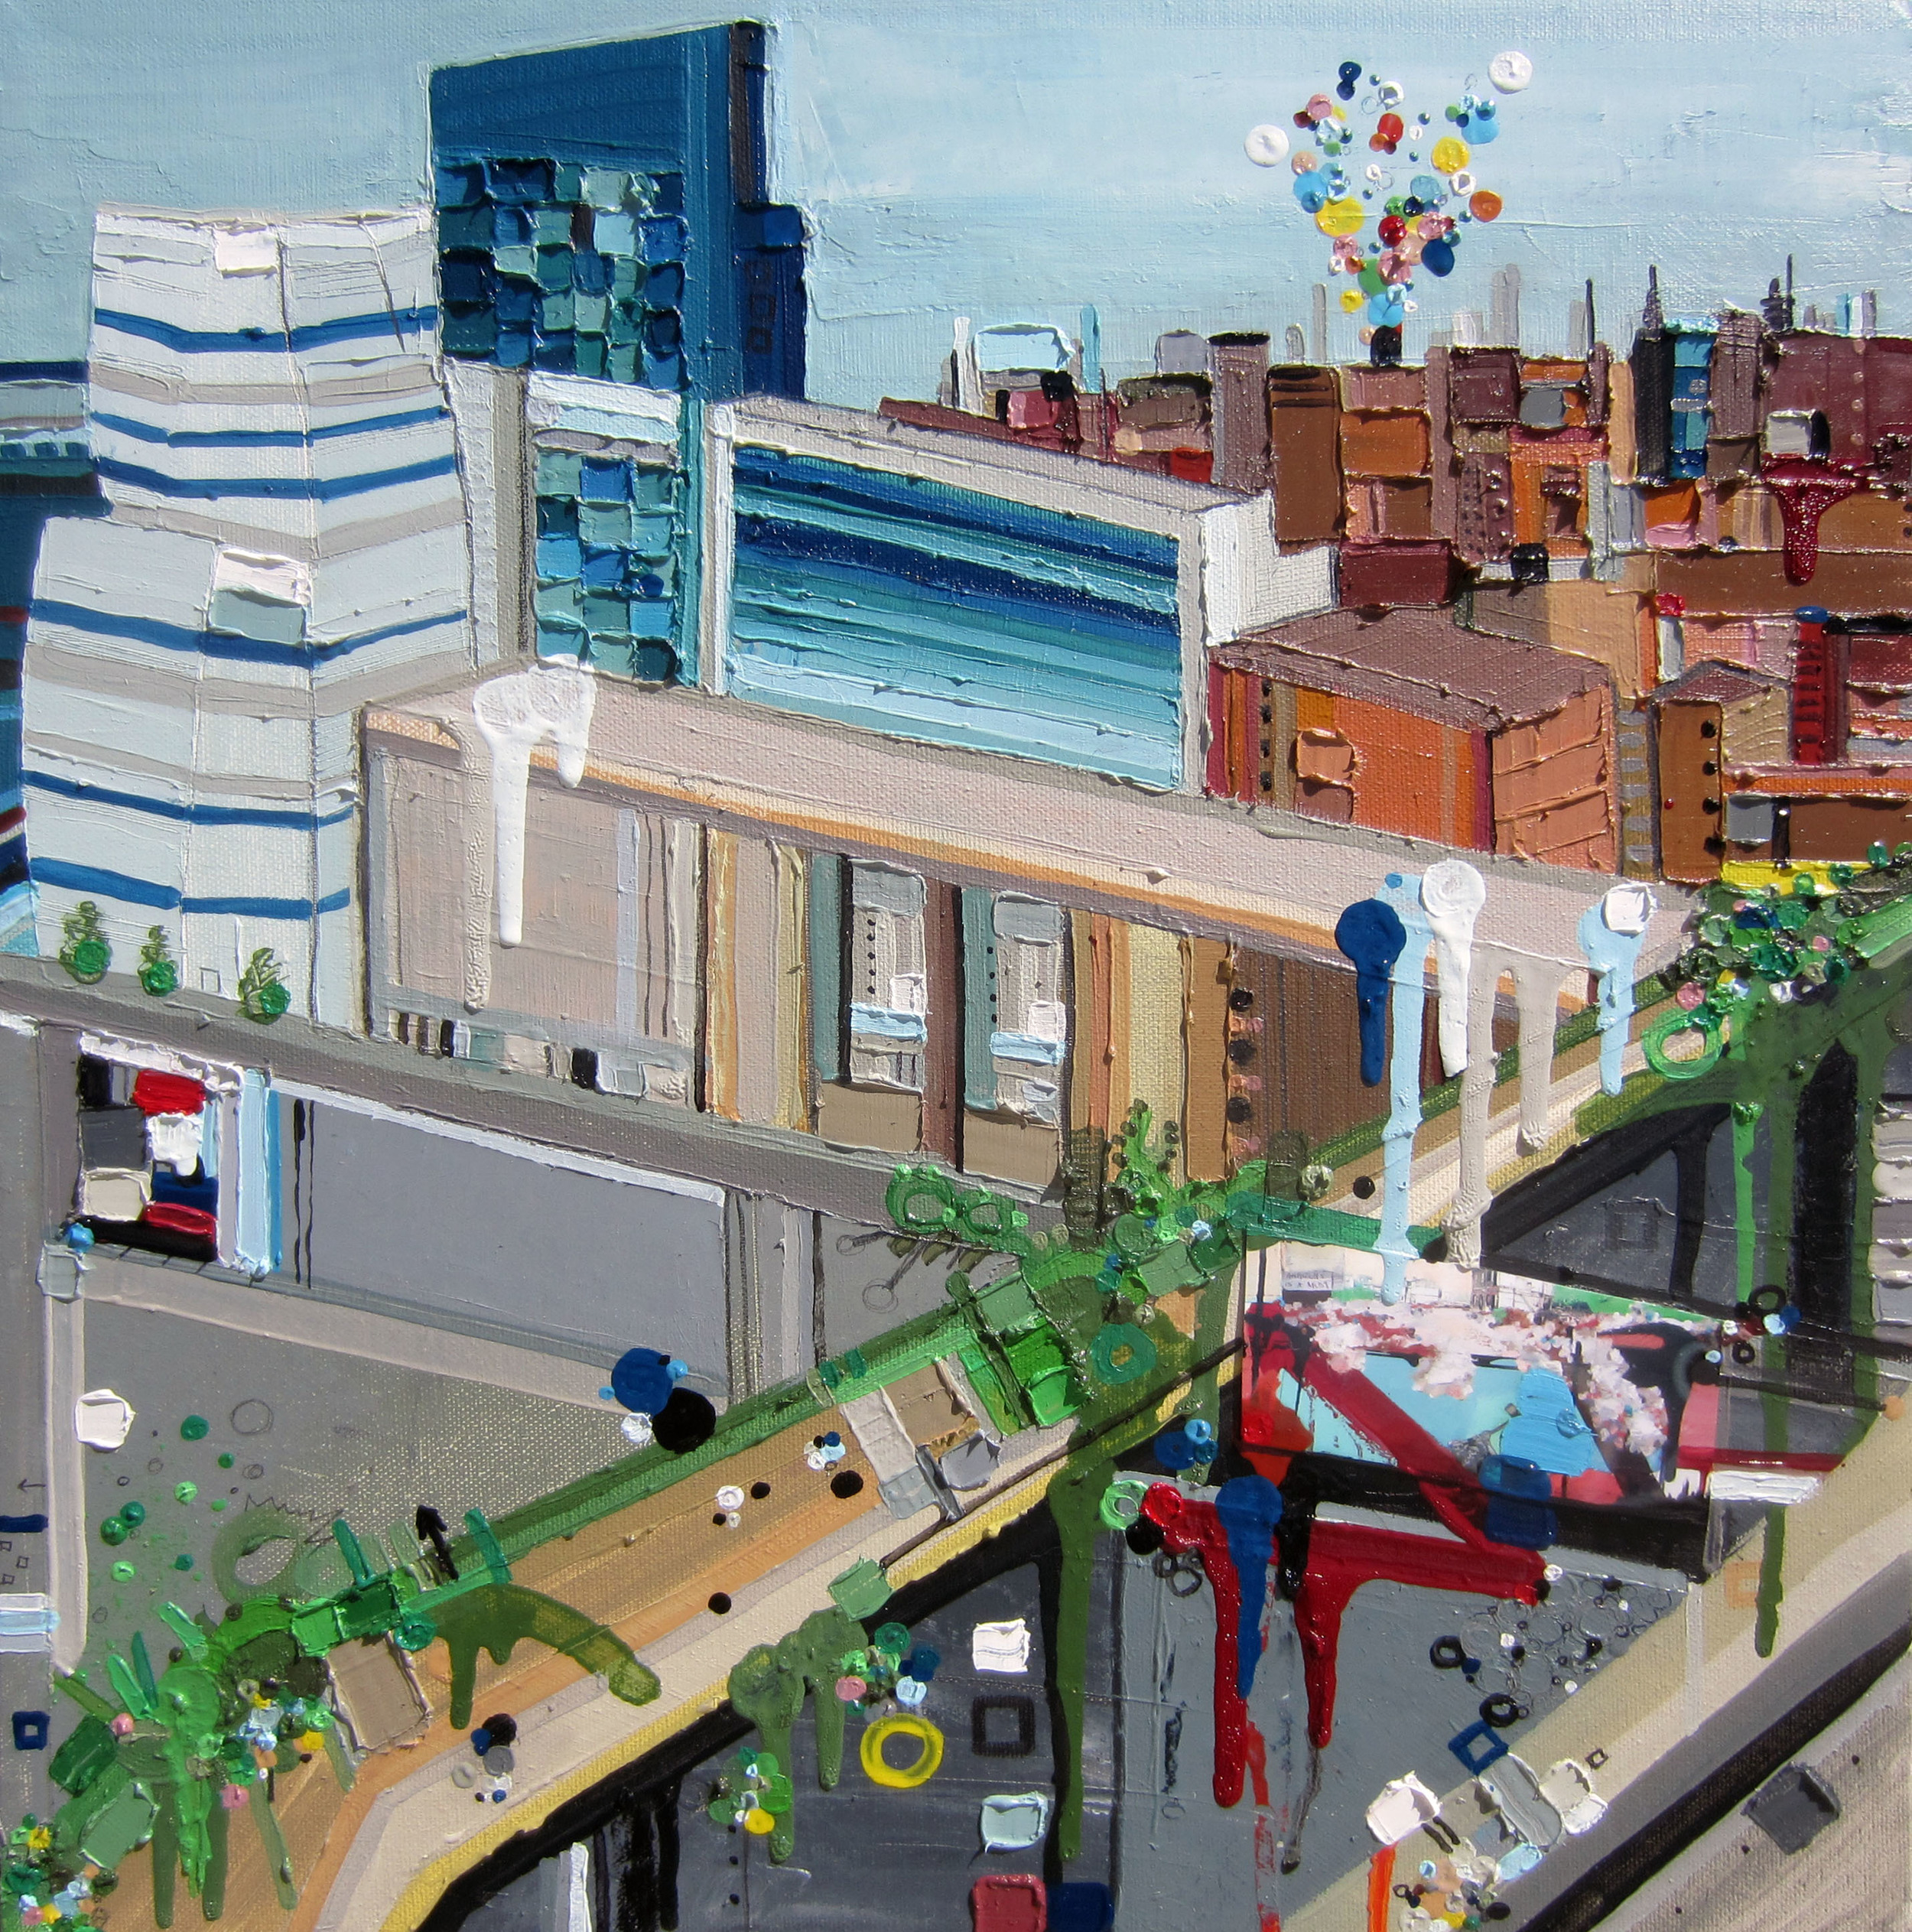 18th Street Elites, 2013,Oil and Mixed Media on canvas, 16 x 16 inches